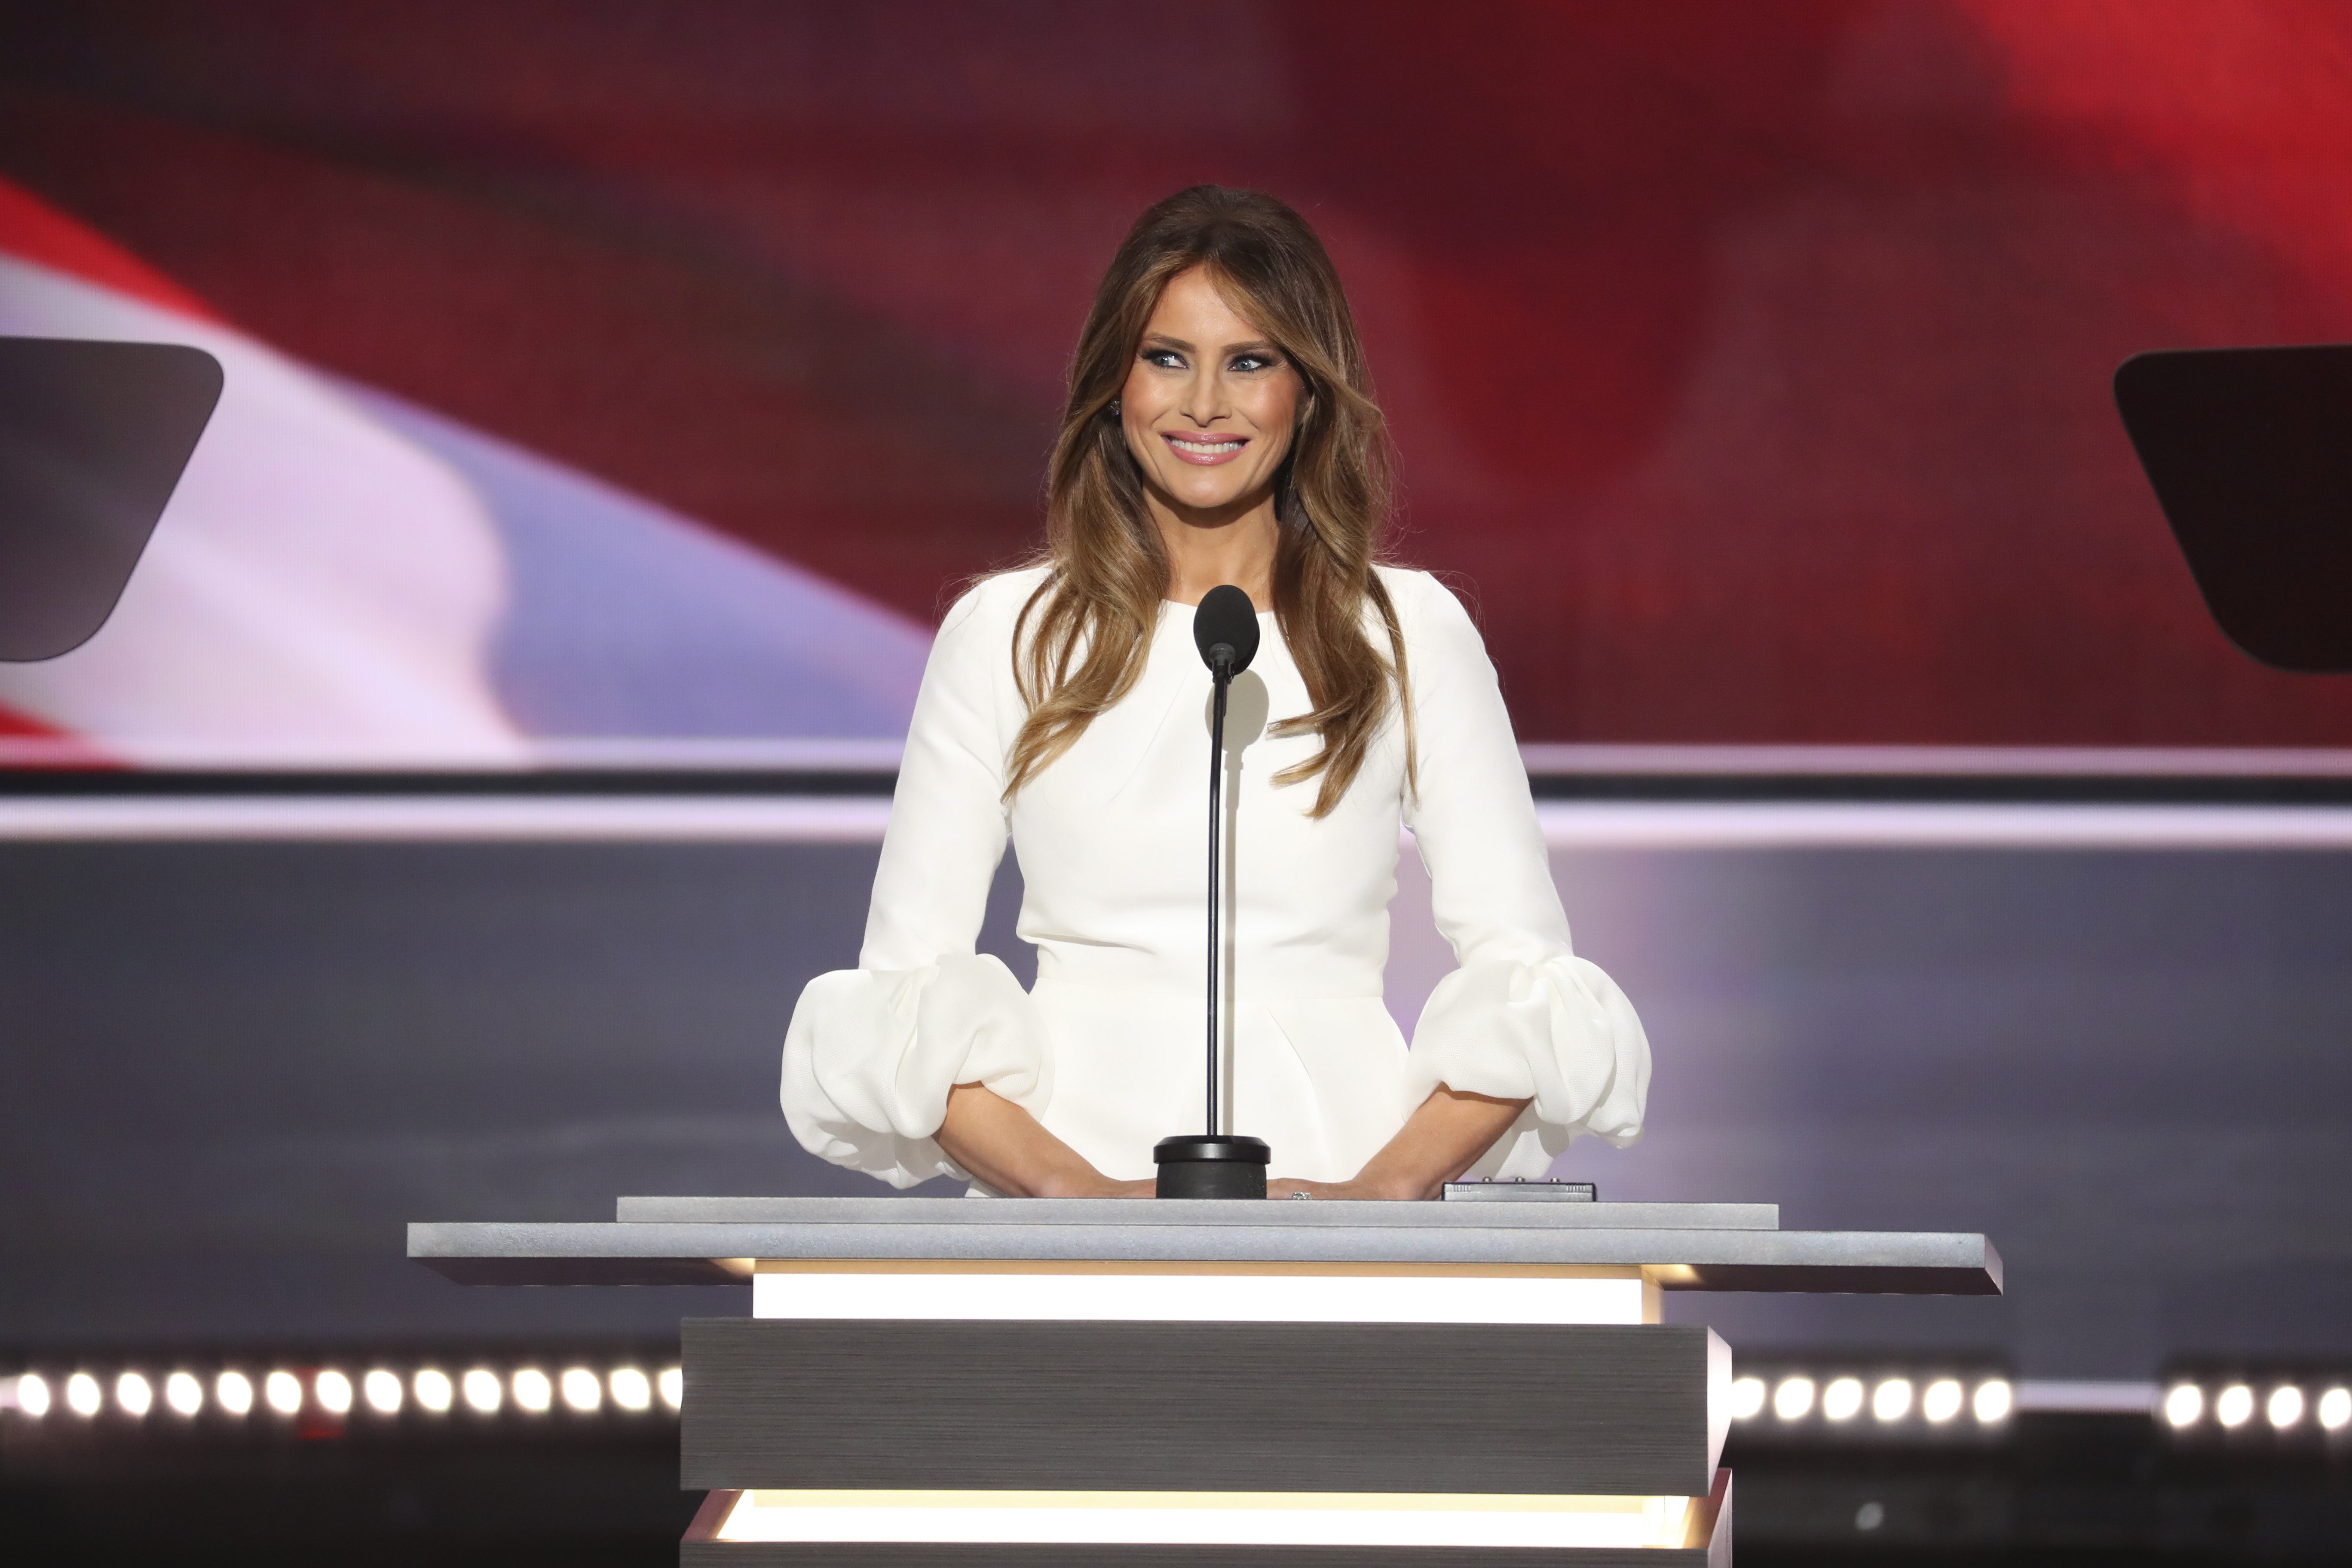 Melania Trump speaks during the Republican National Convention at the Quicken Loans Arena in Cleveland, July 18, 2016.  Longtime employee Meredith McIver of the Trump Organization took responsibility for lifting two passages from a speech by first lady Michelle Obama in 2008 for Melania Trump's Monday address at the convention, saying that it was an innocent mistake. (New York Times)